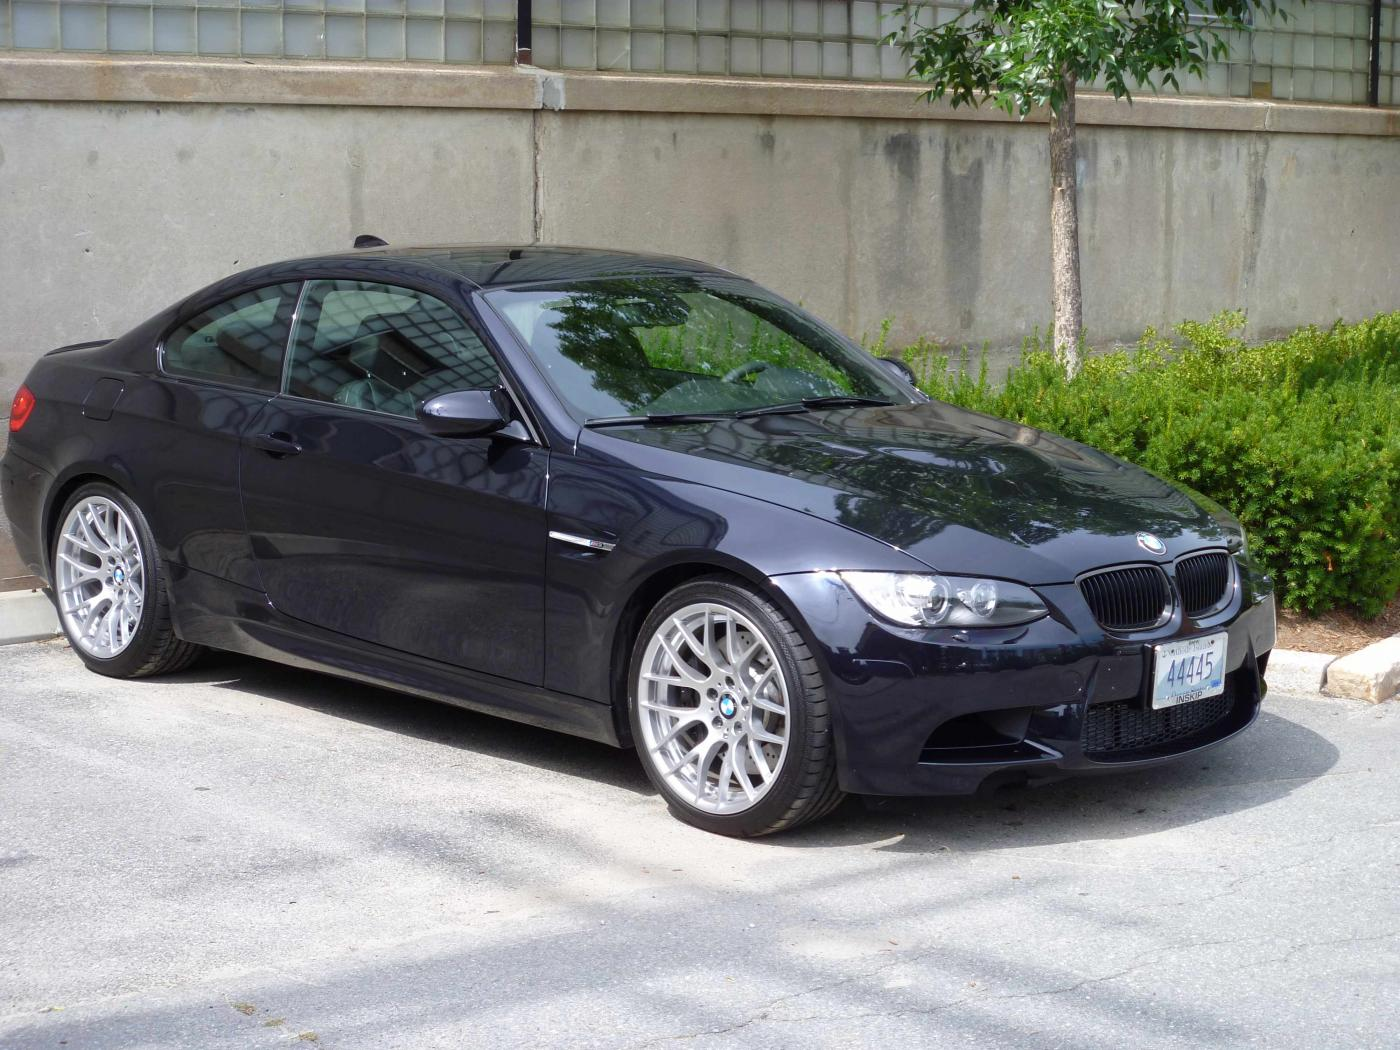 e90 e92 official m3 competition package zcp sedan coupe thread page 3. Black Bedroom Furniture Sets. Home Design Ideas